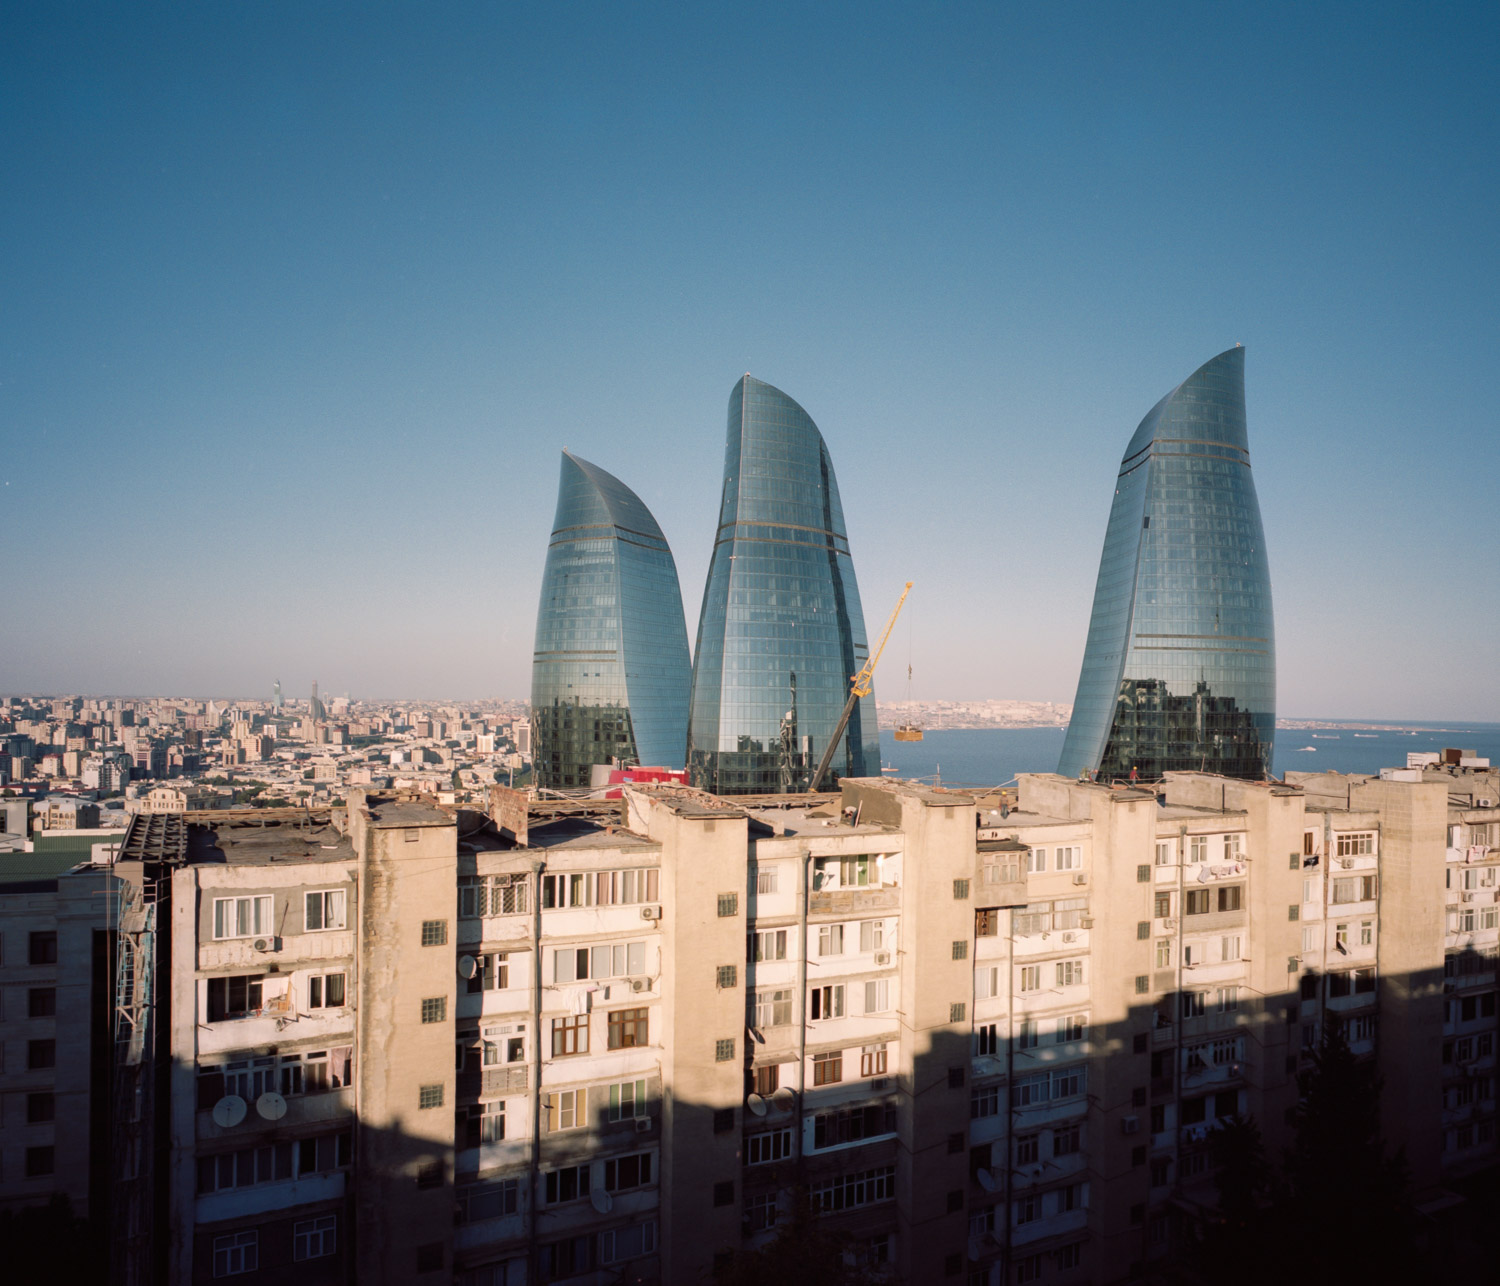 baku-oil-gentrification--19.jpg